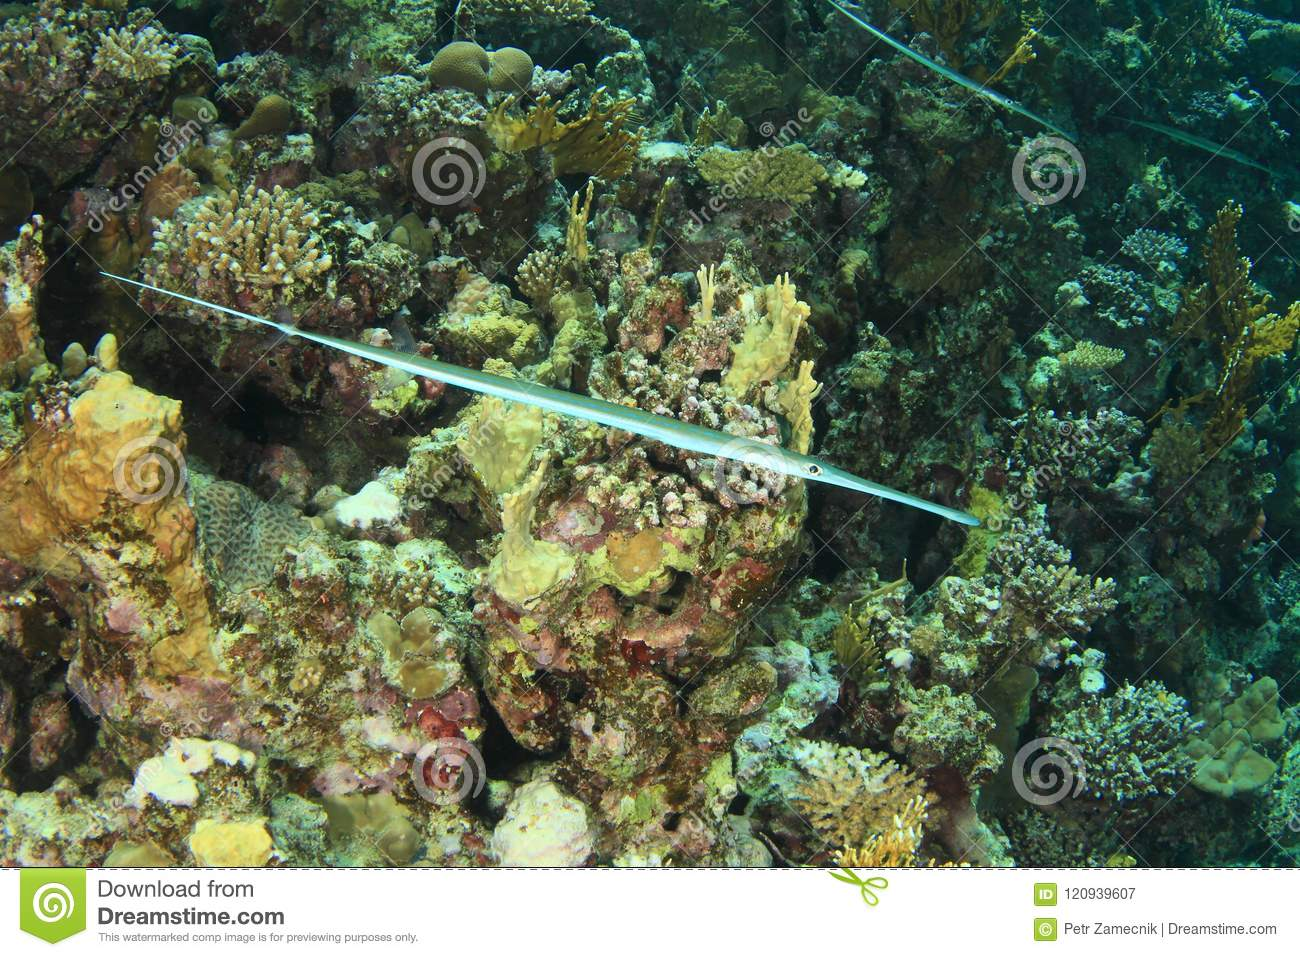 Fish - Bluespotted cornetfish